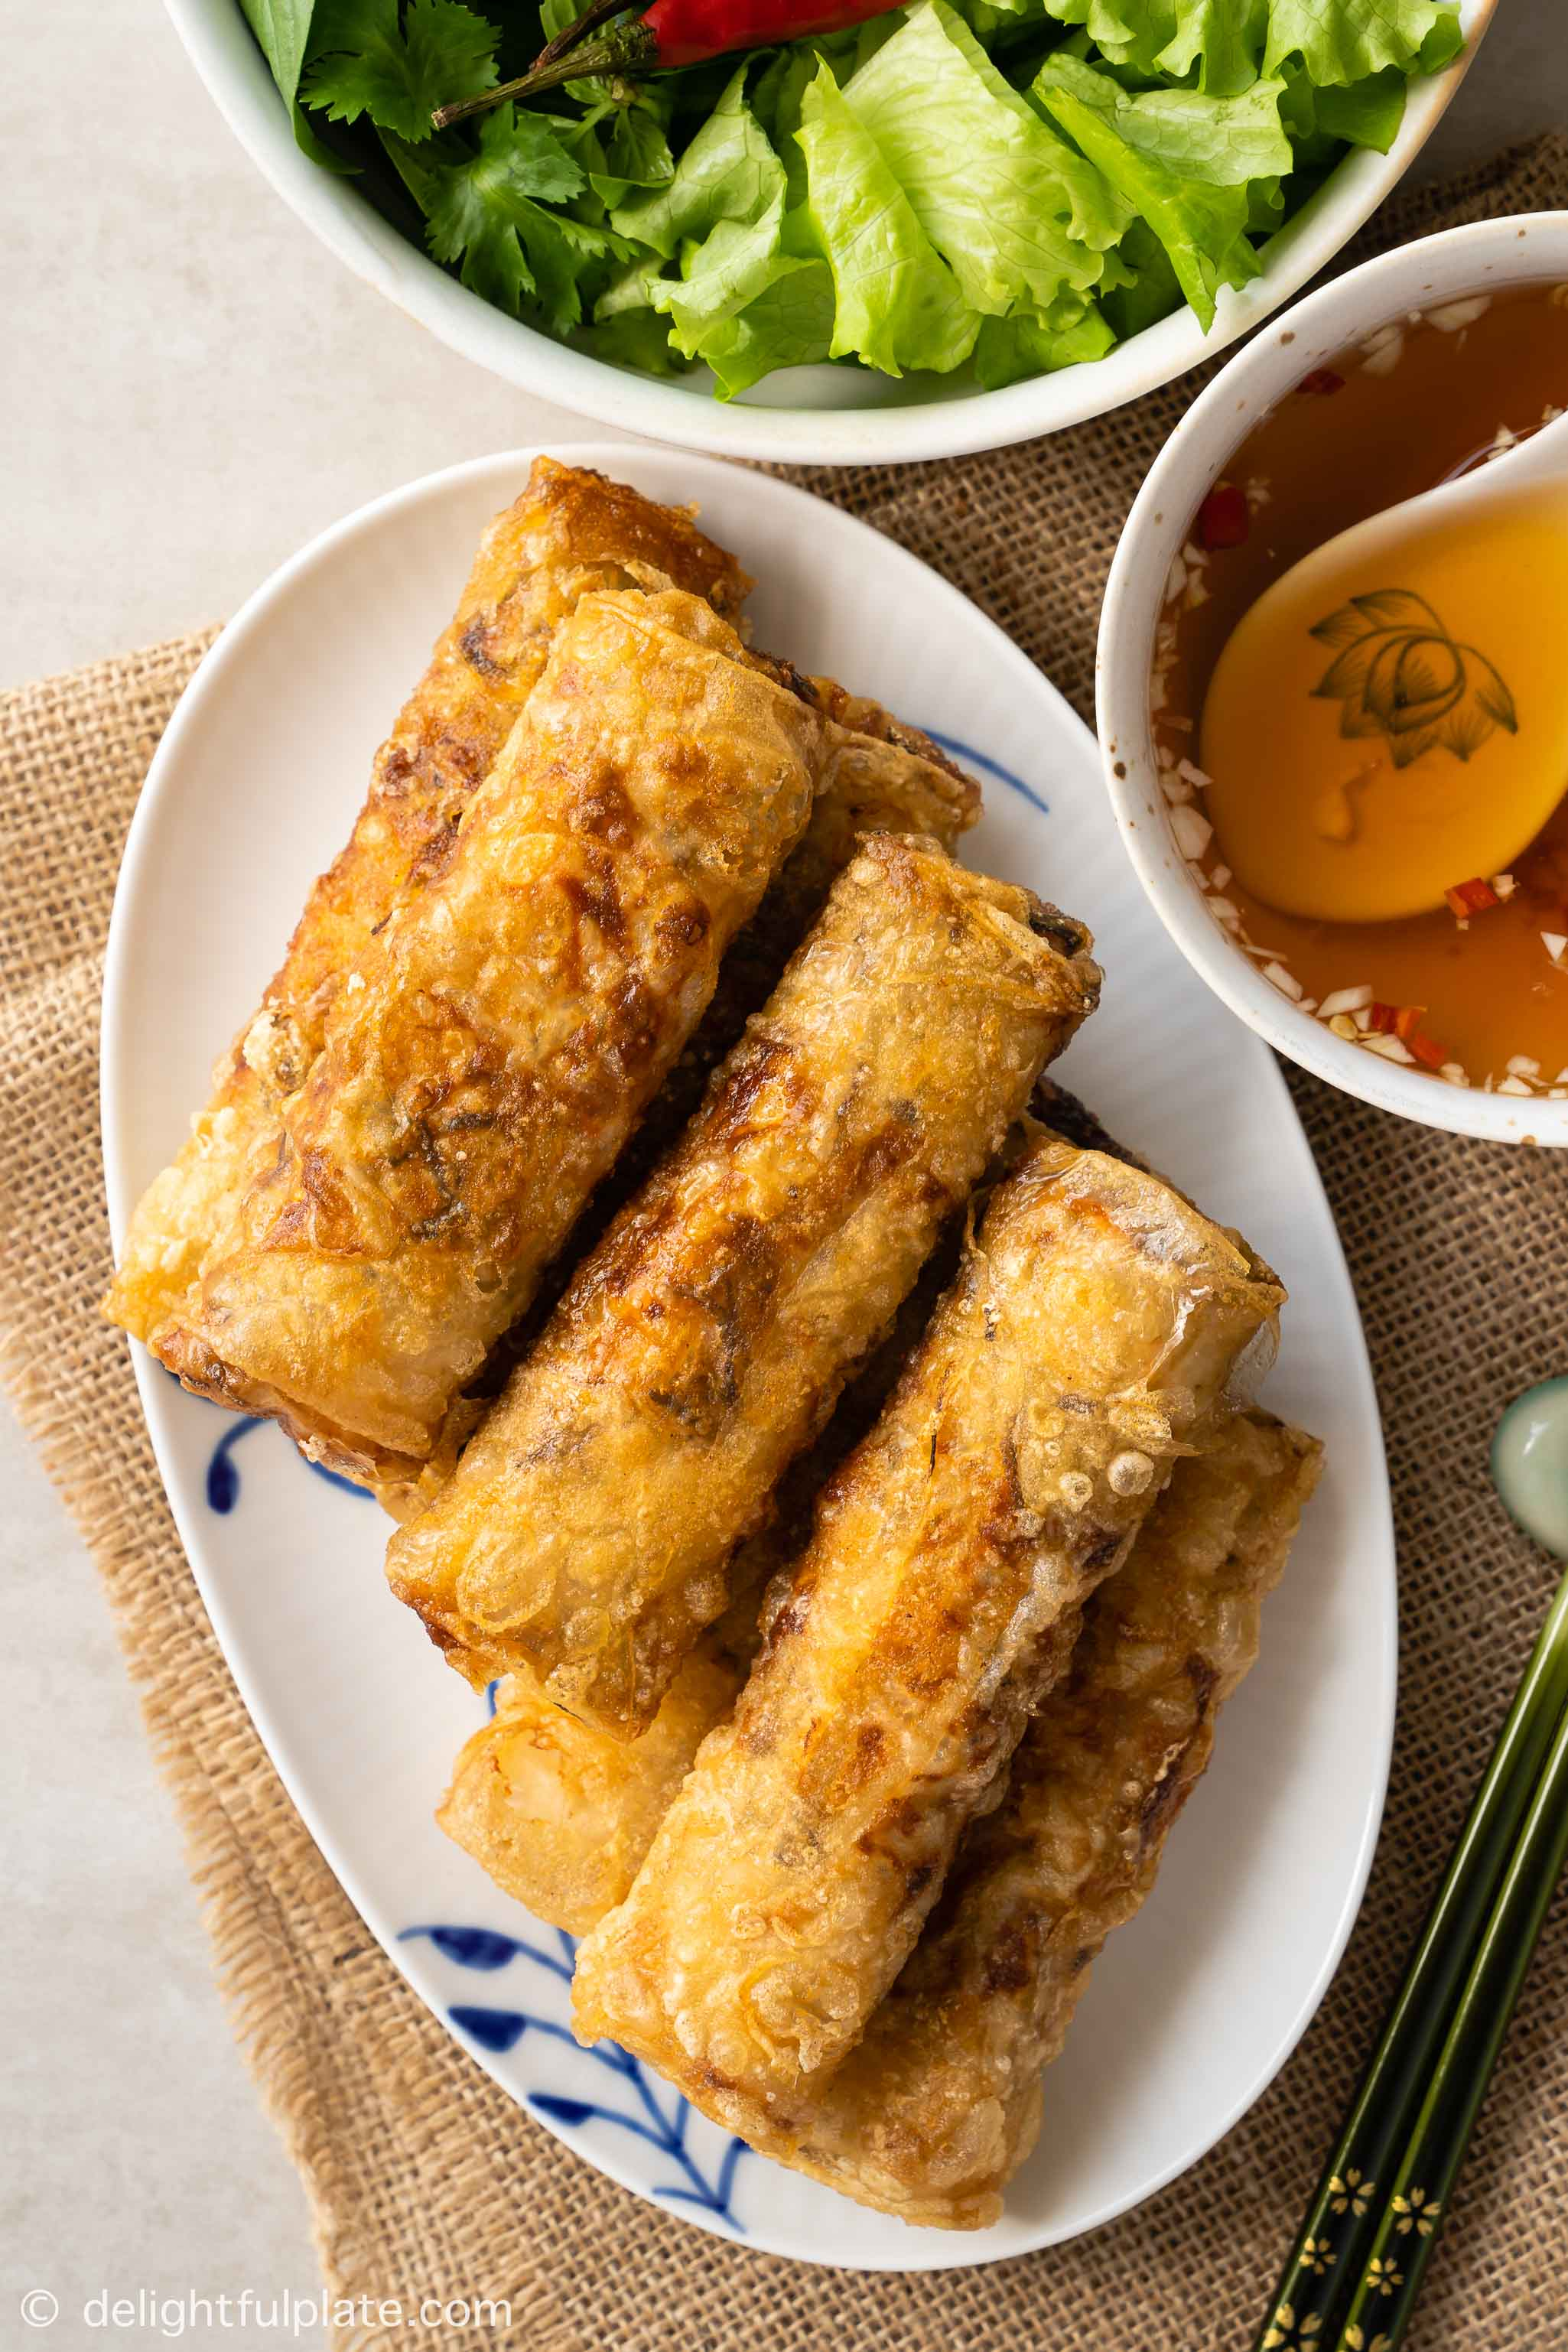 a plate of Vietnamese crispy spring rolls, served with dipping sauce